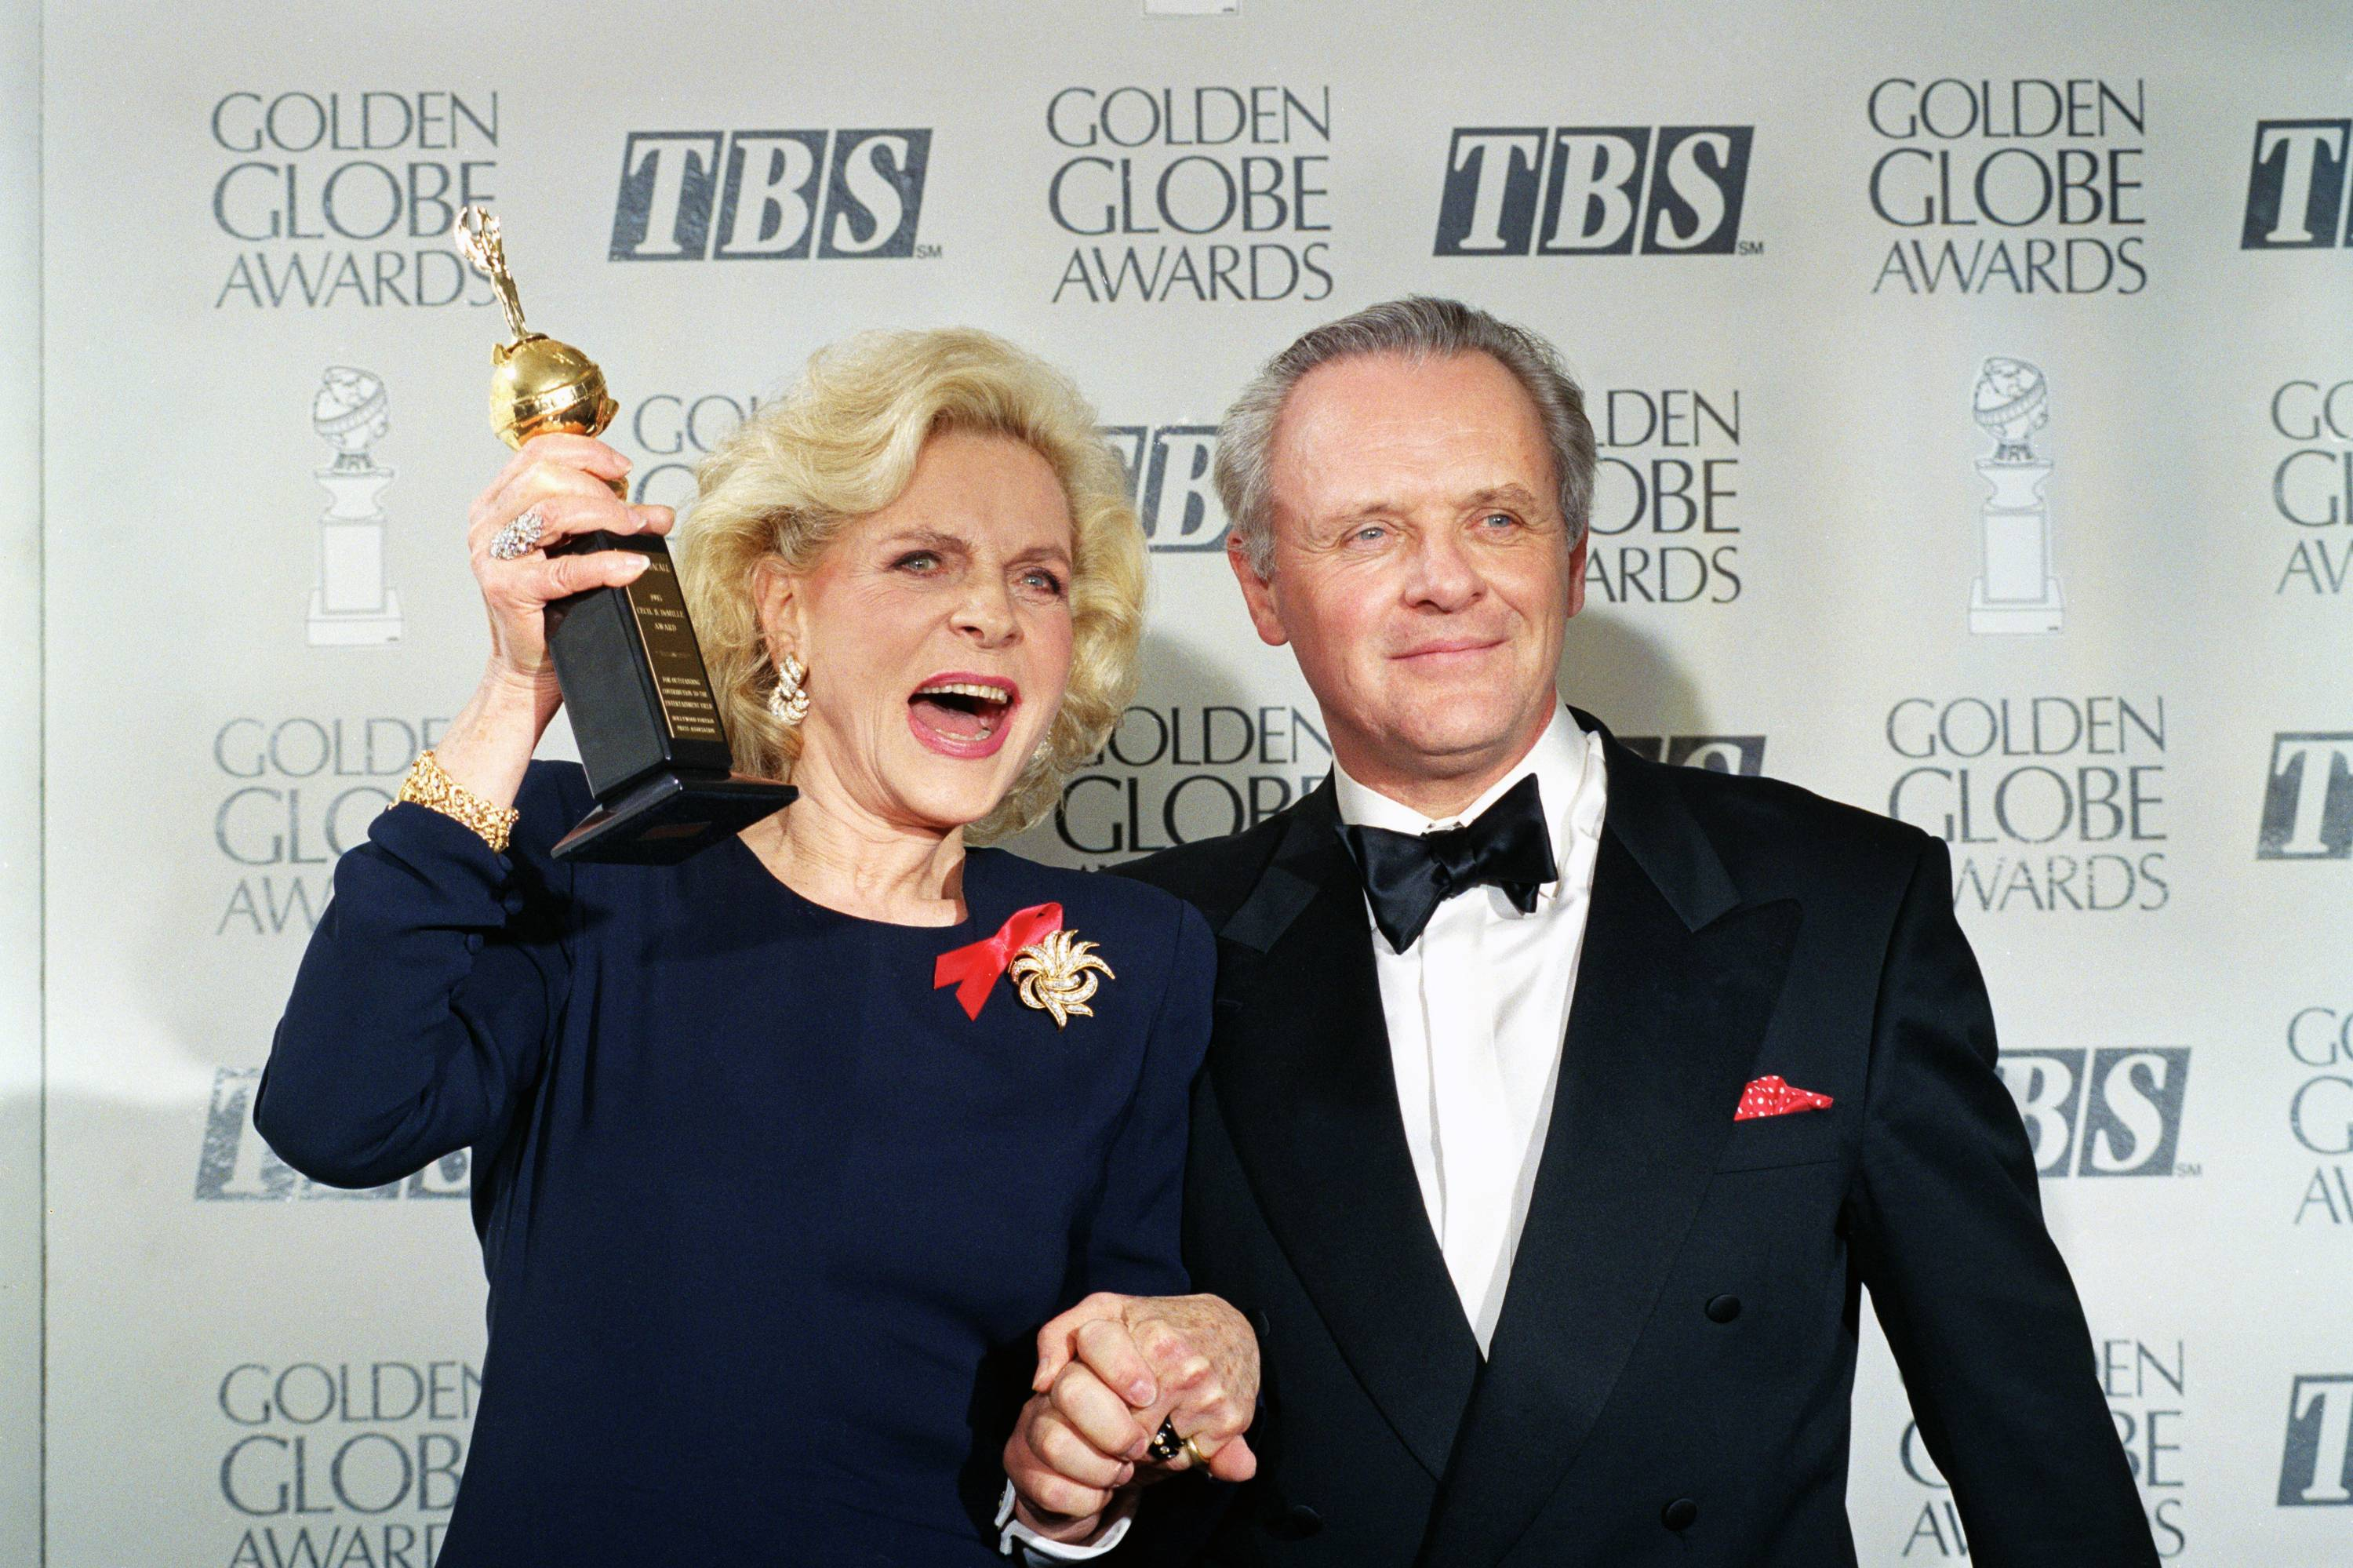 Lauren Bacall holds up her Cecil B. DeMille Award for Lifetime Achievement as she holds hands with actor Anthony Hopkins backstage at the 50th annual Golden Globe Awards in 1993. Bacall died Tuesday in New York.